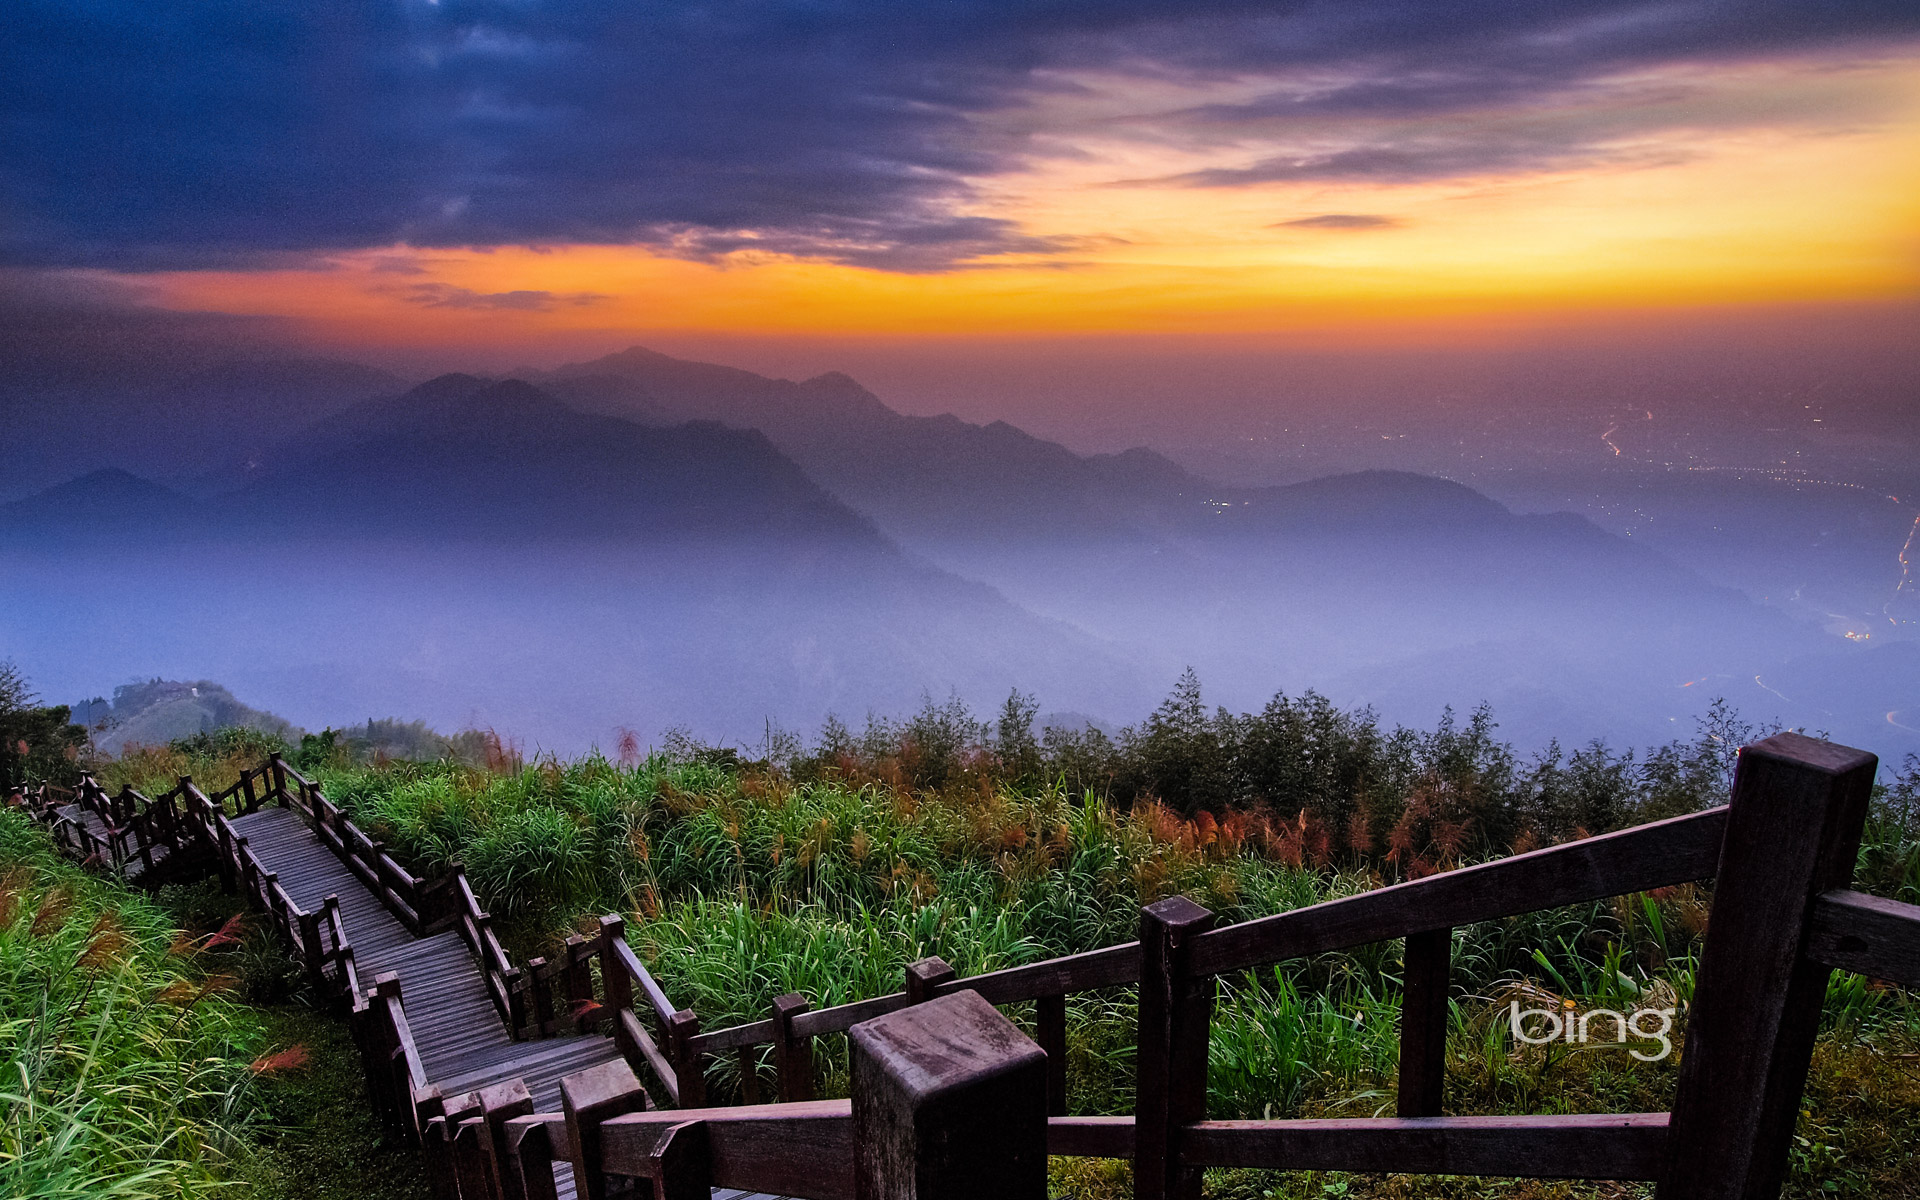 Alishan National Scenic Area, Chiayi County, Taiwan